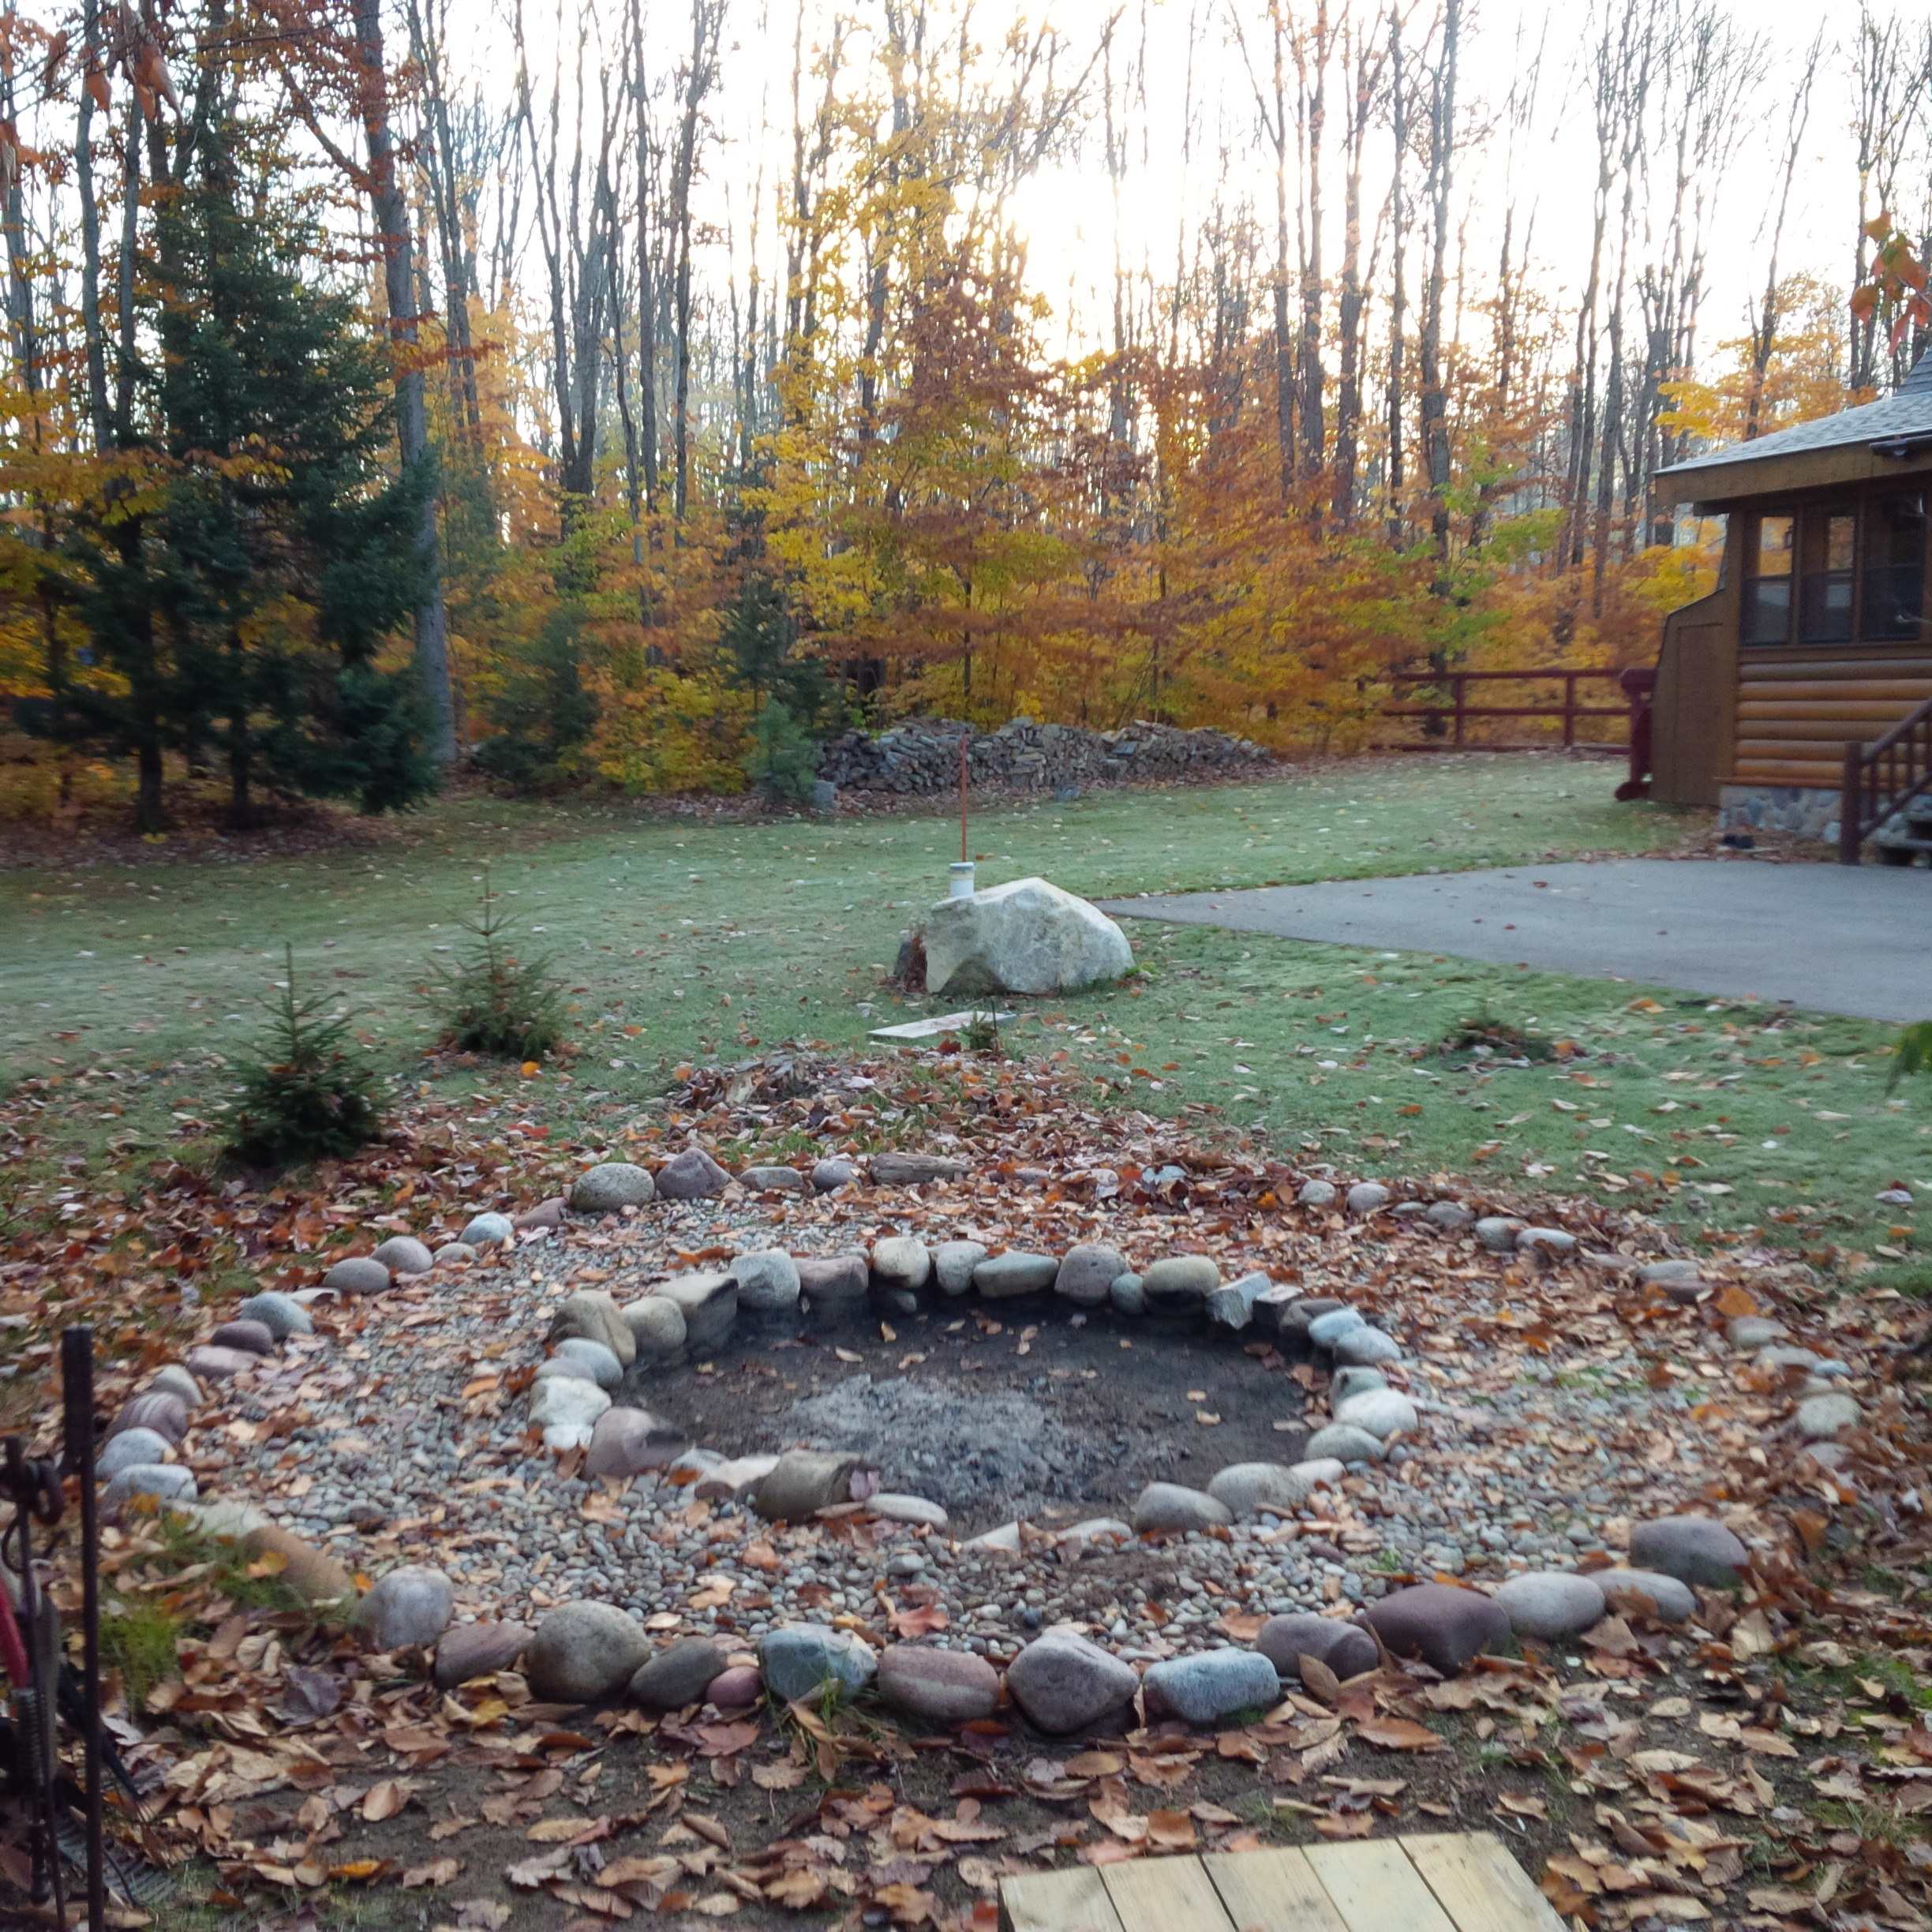 Other firepit